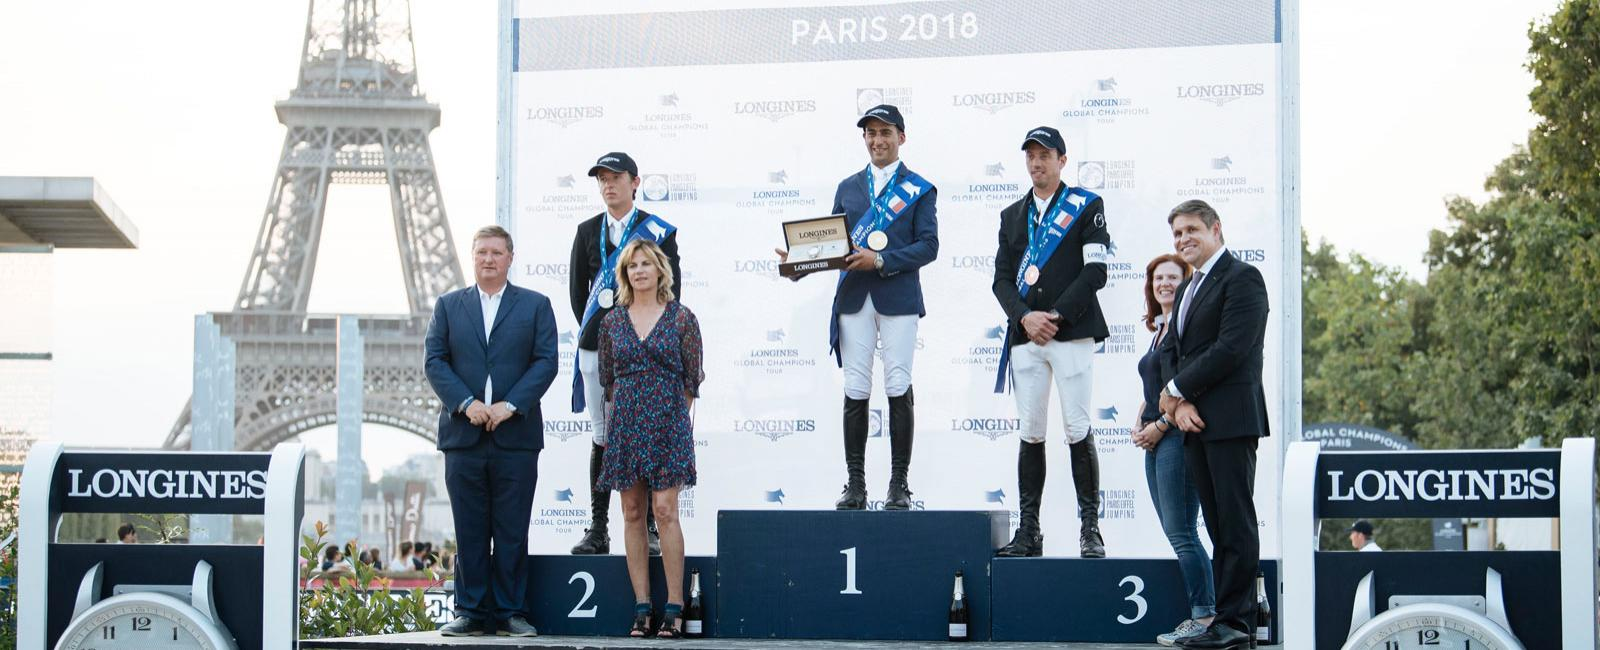 Longines Global Champions Tour; Paris;2018